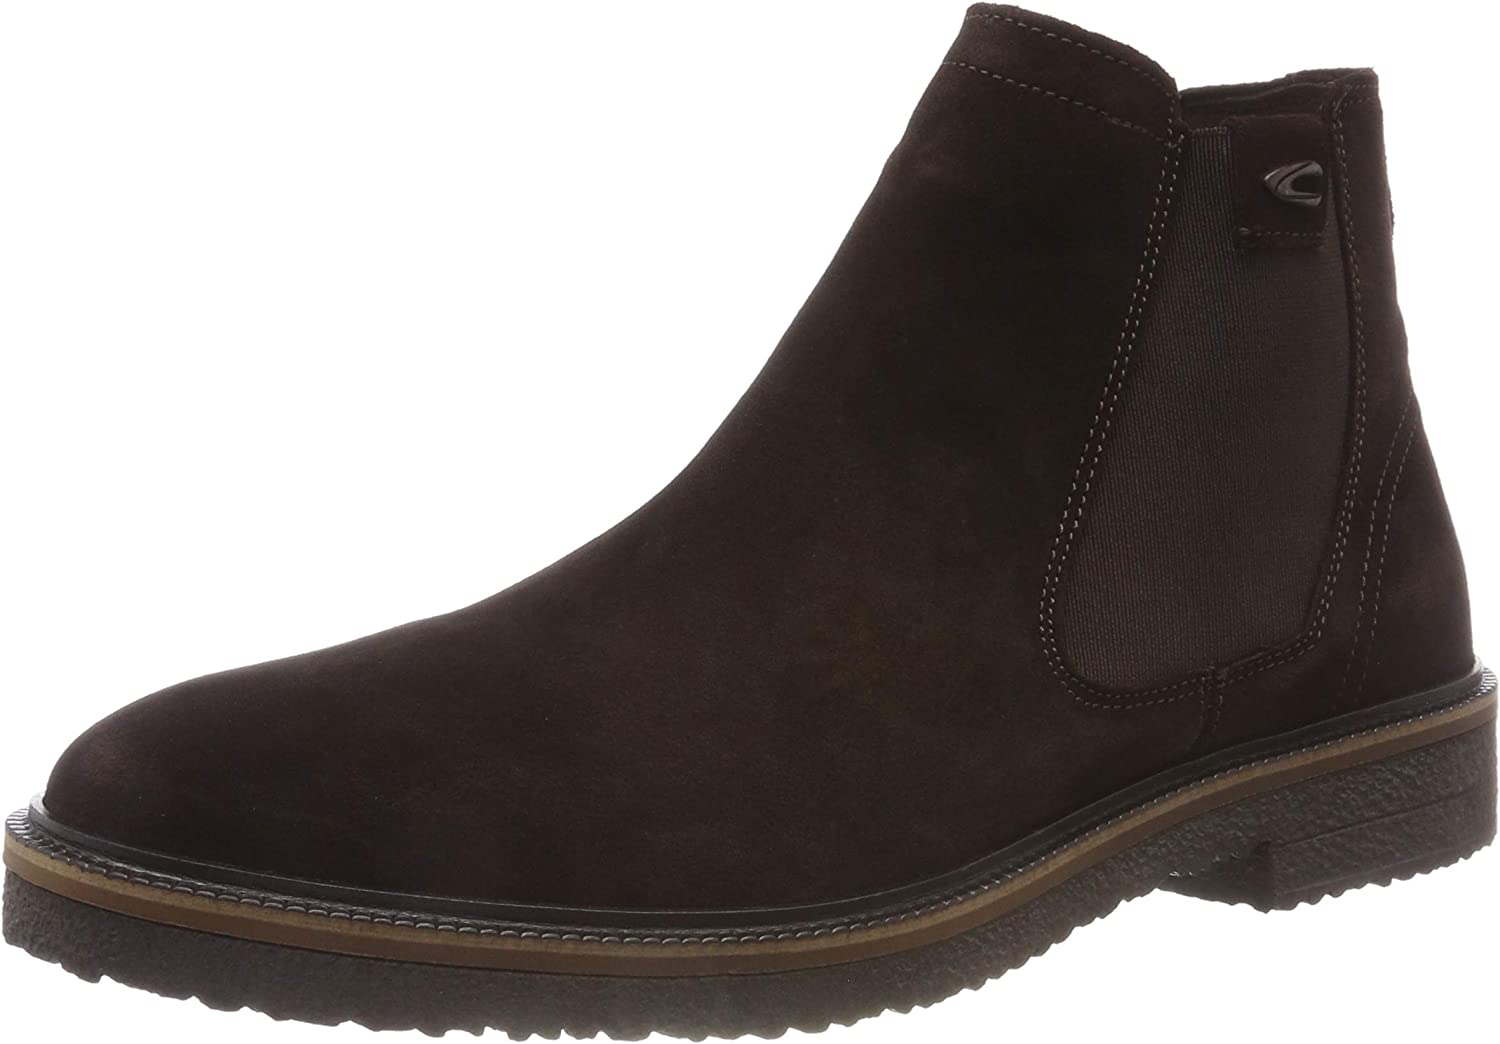 CAMEL ACTIVE Trade, Boots for Men Brown